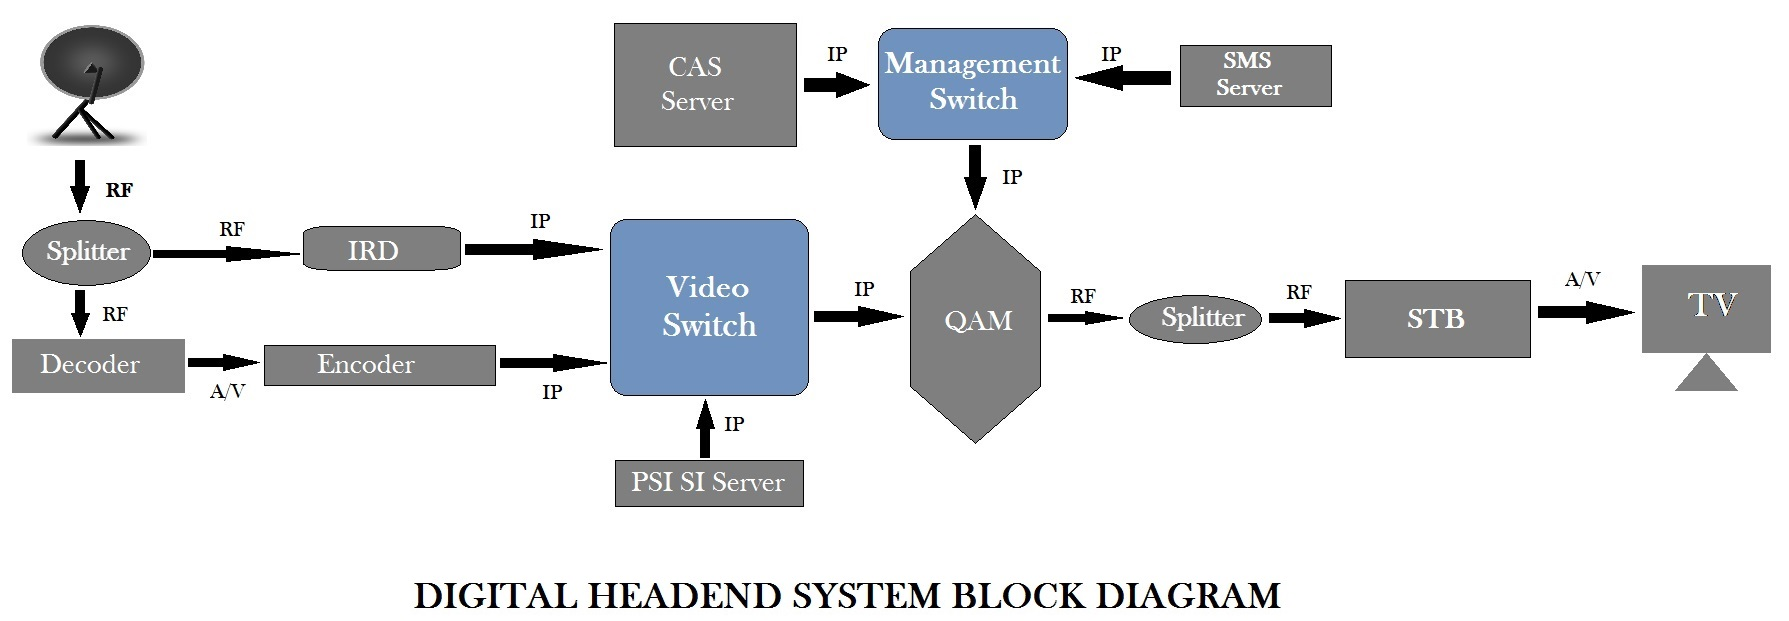 Dth Tv Diagram Mastering Wiring Direct Satellite Diagrams What Is Digital Headend Or Cable System Rh Headendinfo Com Channels